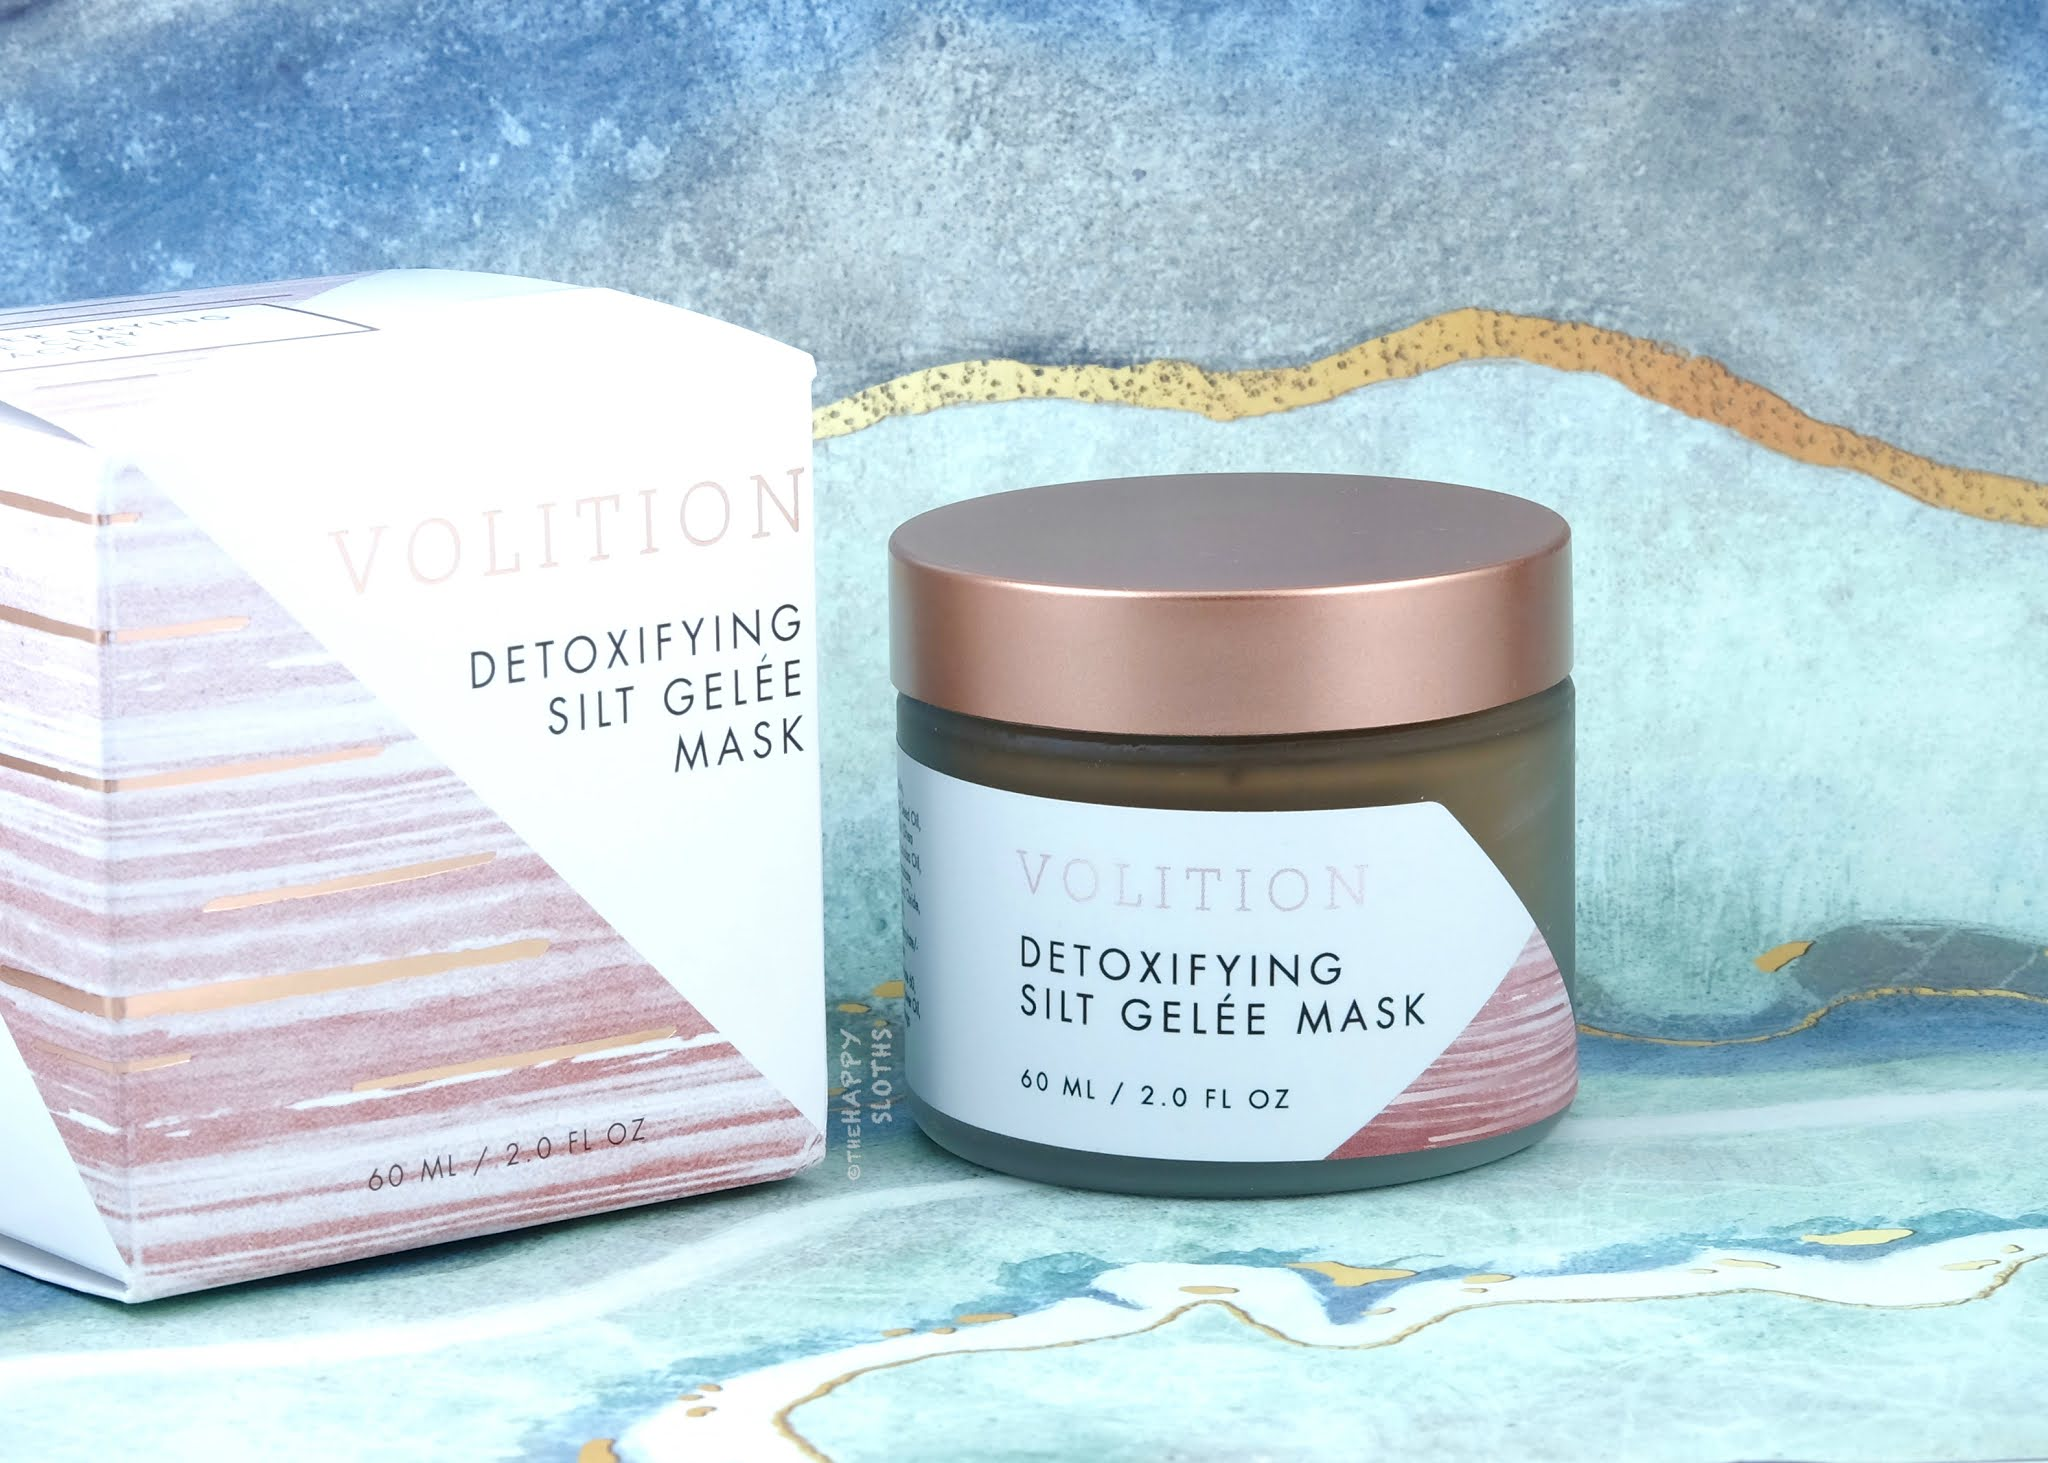 Volition Beauty | Detoxifying Silt Gelee Mask: Review